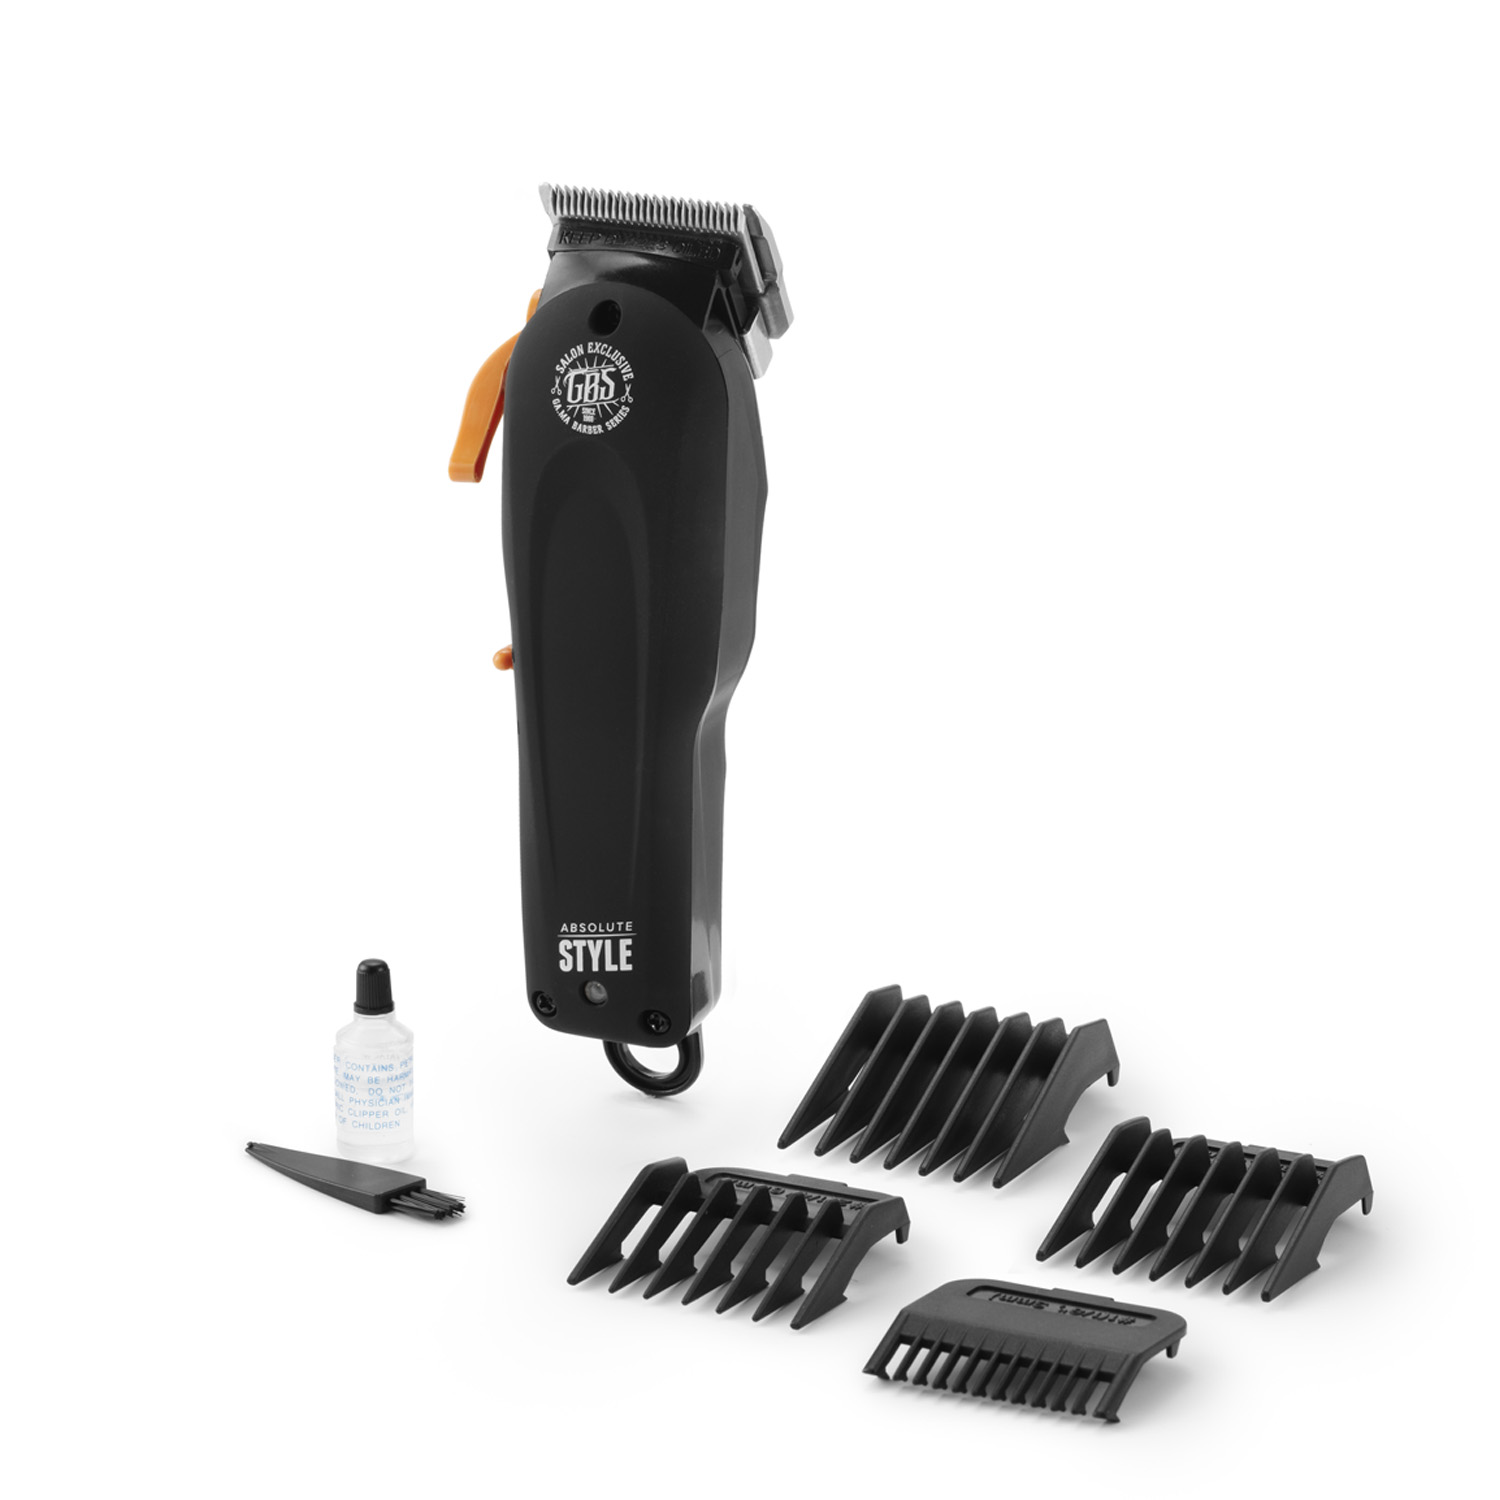 gbs-absolute-style-cordless-clipper